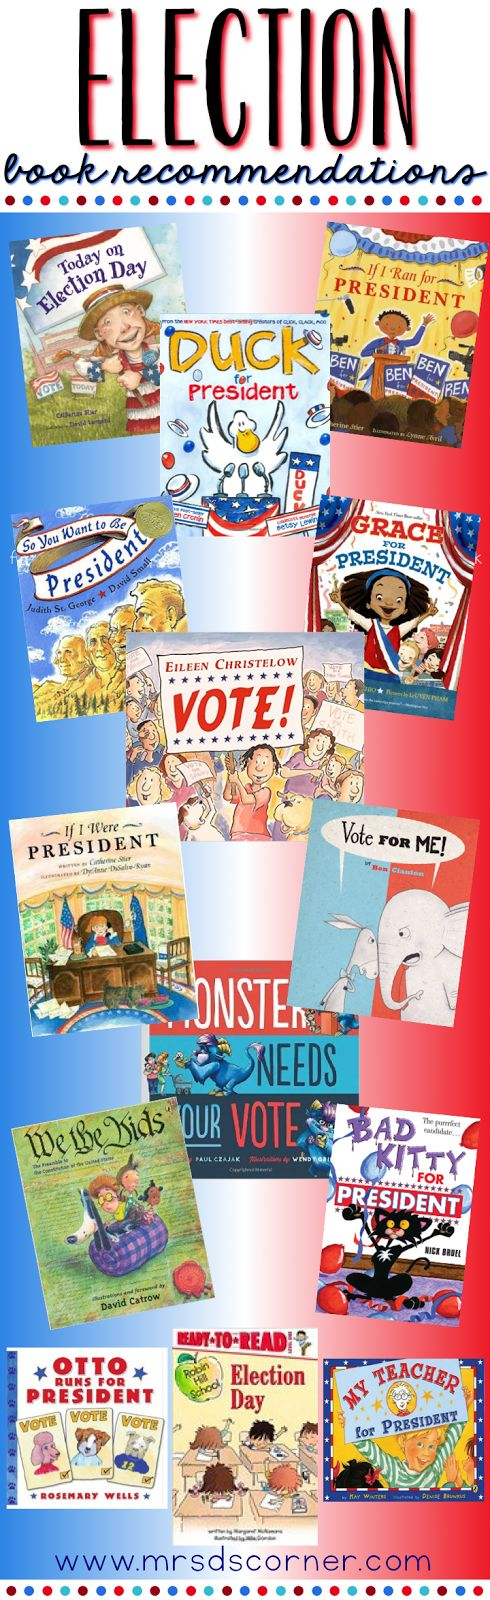 Mrs D's Corner: Book Recommendations for the Election